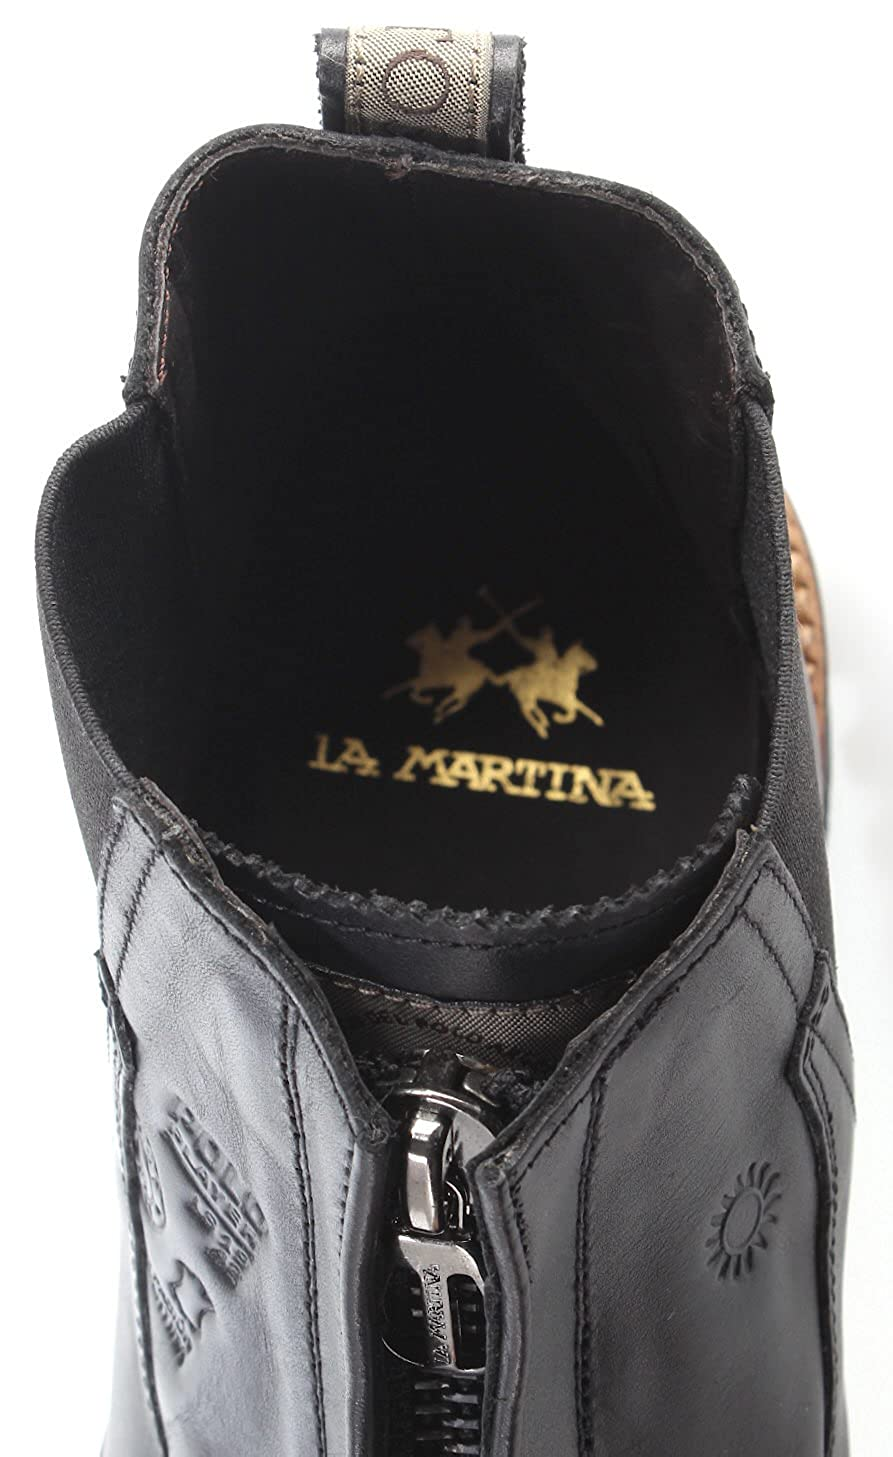 La Martina Scarpe Stivaletti Uomo L4027159 Buttero Nero Pelle Made in Italy  New  Amazon.it  Scarpe e borse 6a0849646d2